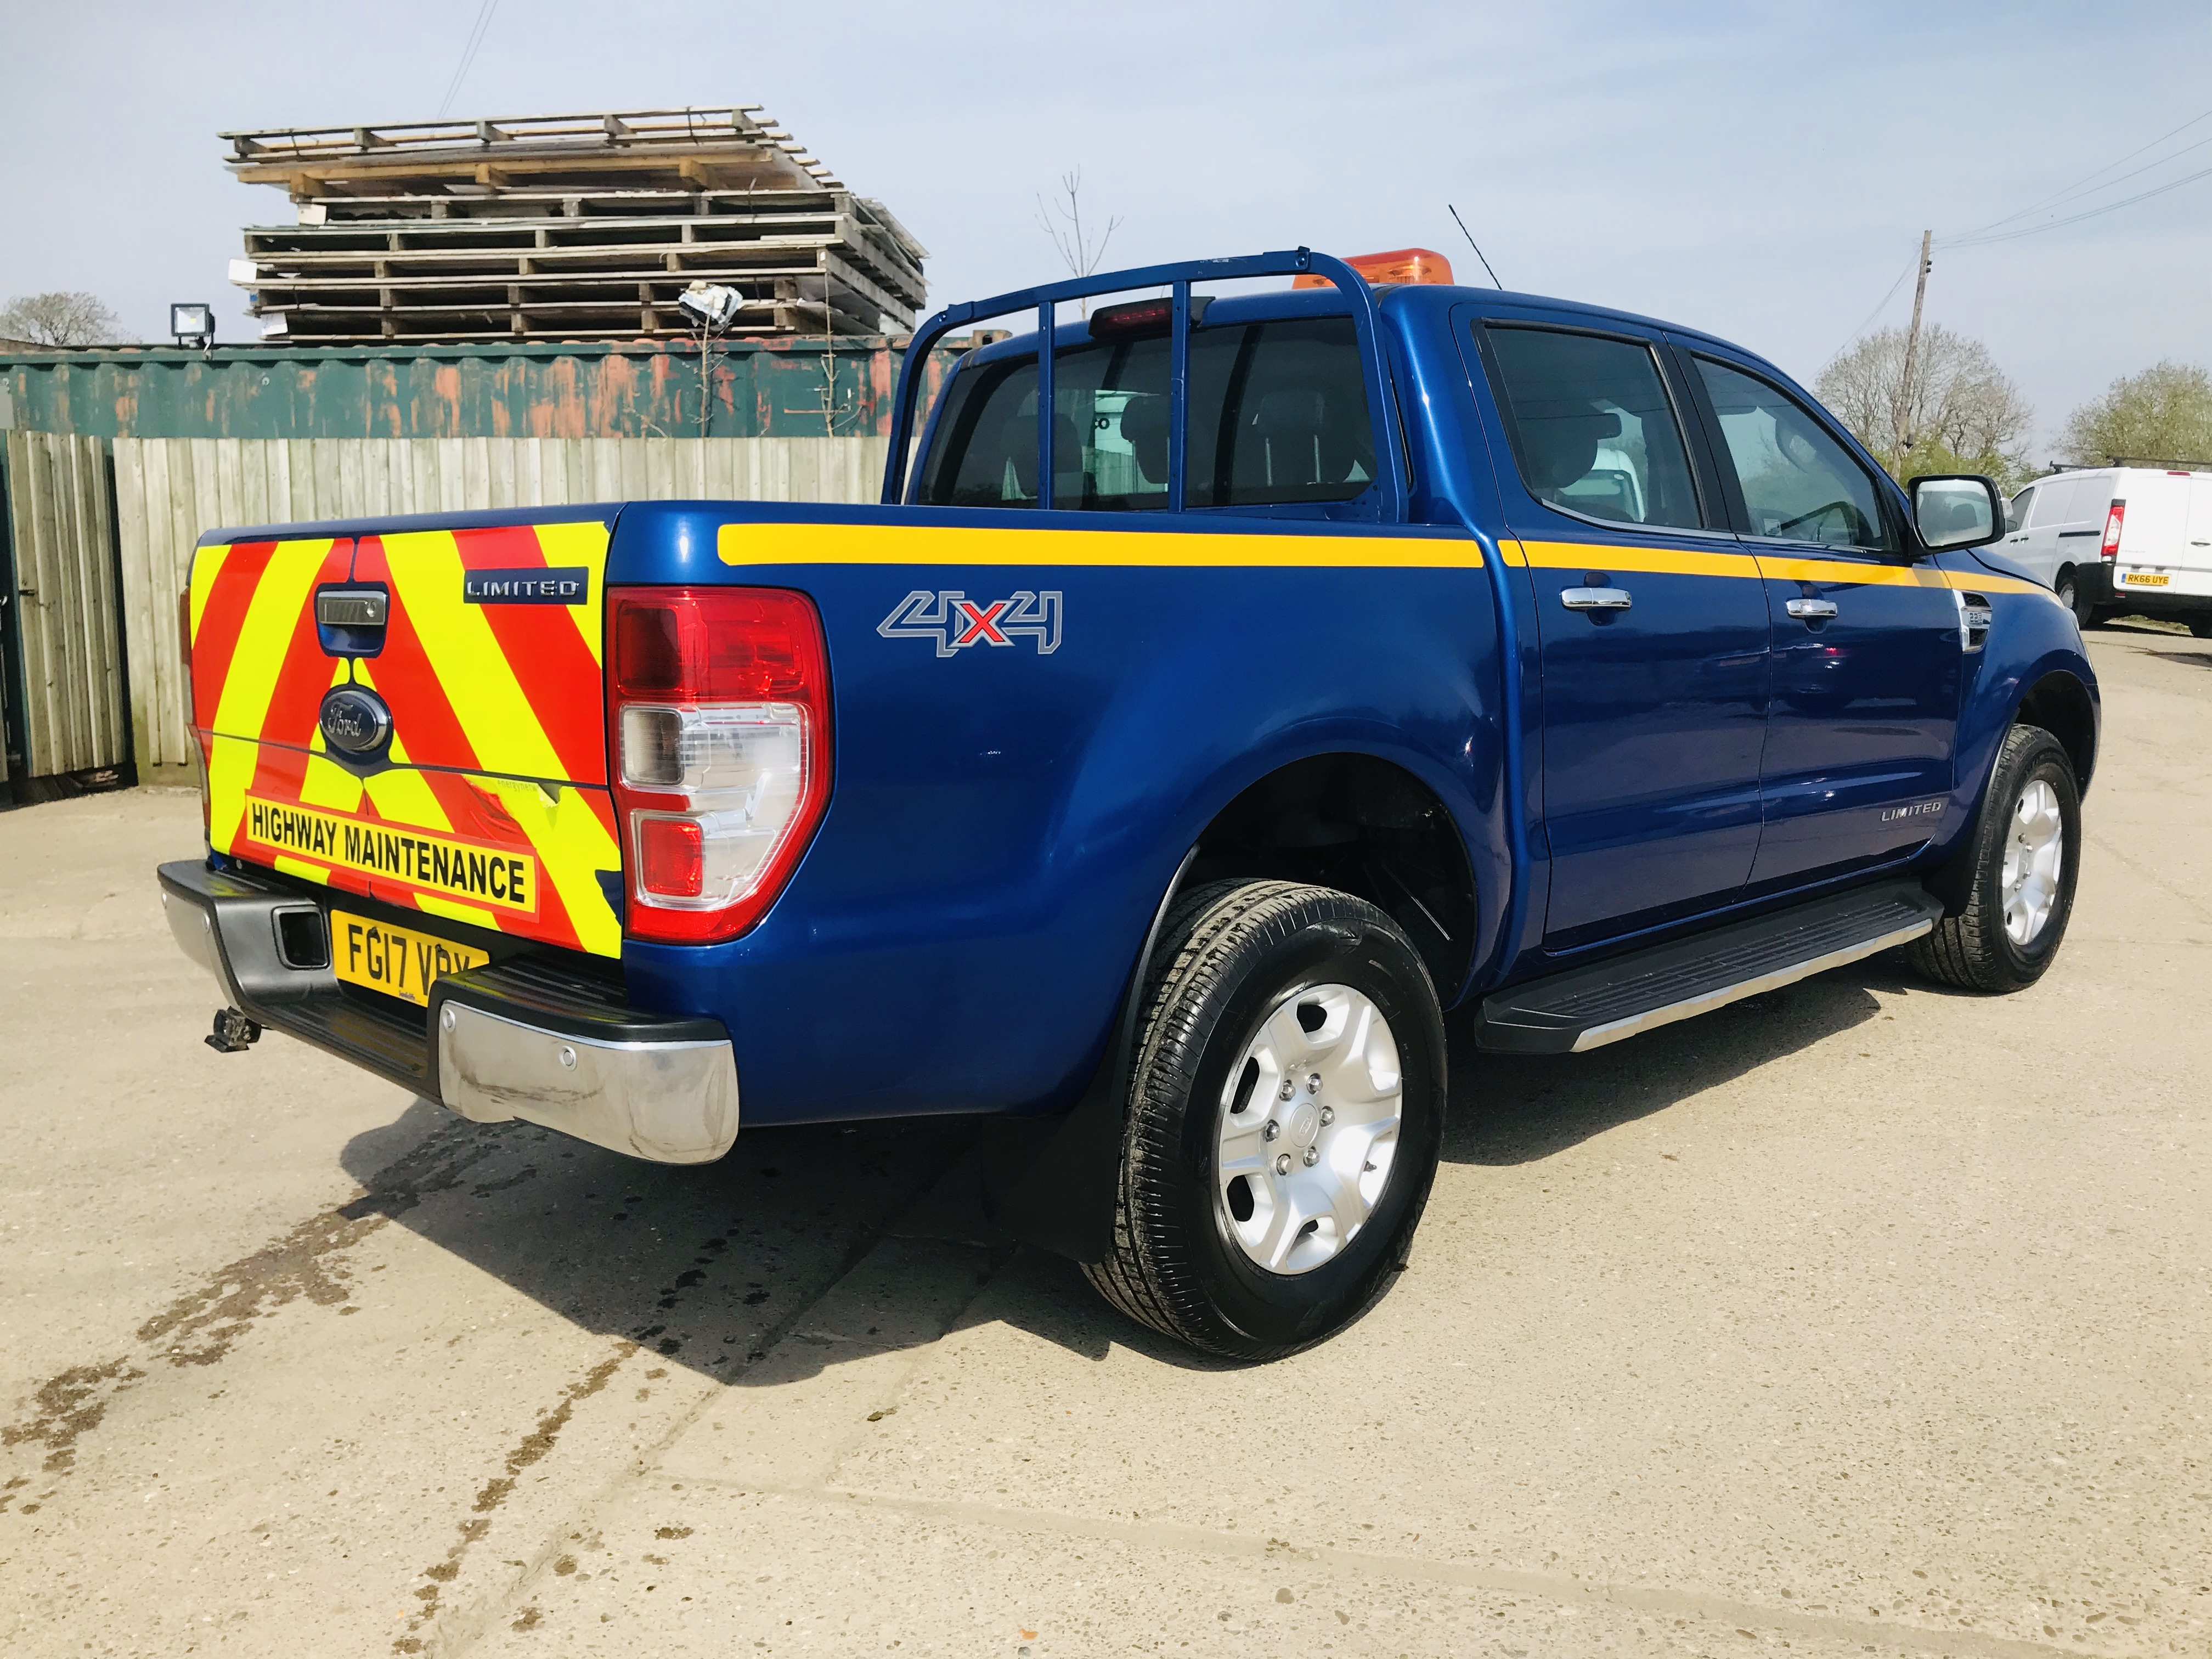 """ON SALE FORD RANGER 2.2TDCI """"LIMITED"""" D/C PICK UP (17 REG) 1 OWNER FSH - FULL LEATHER - CLIMATE & AC - Image 11 of 38"""